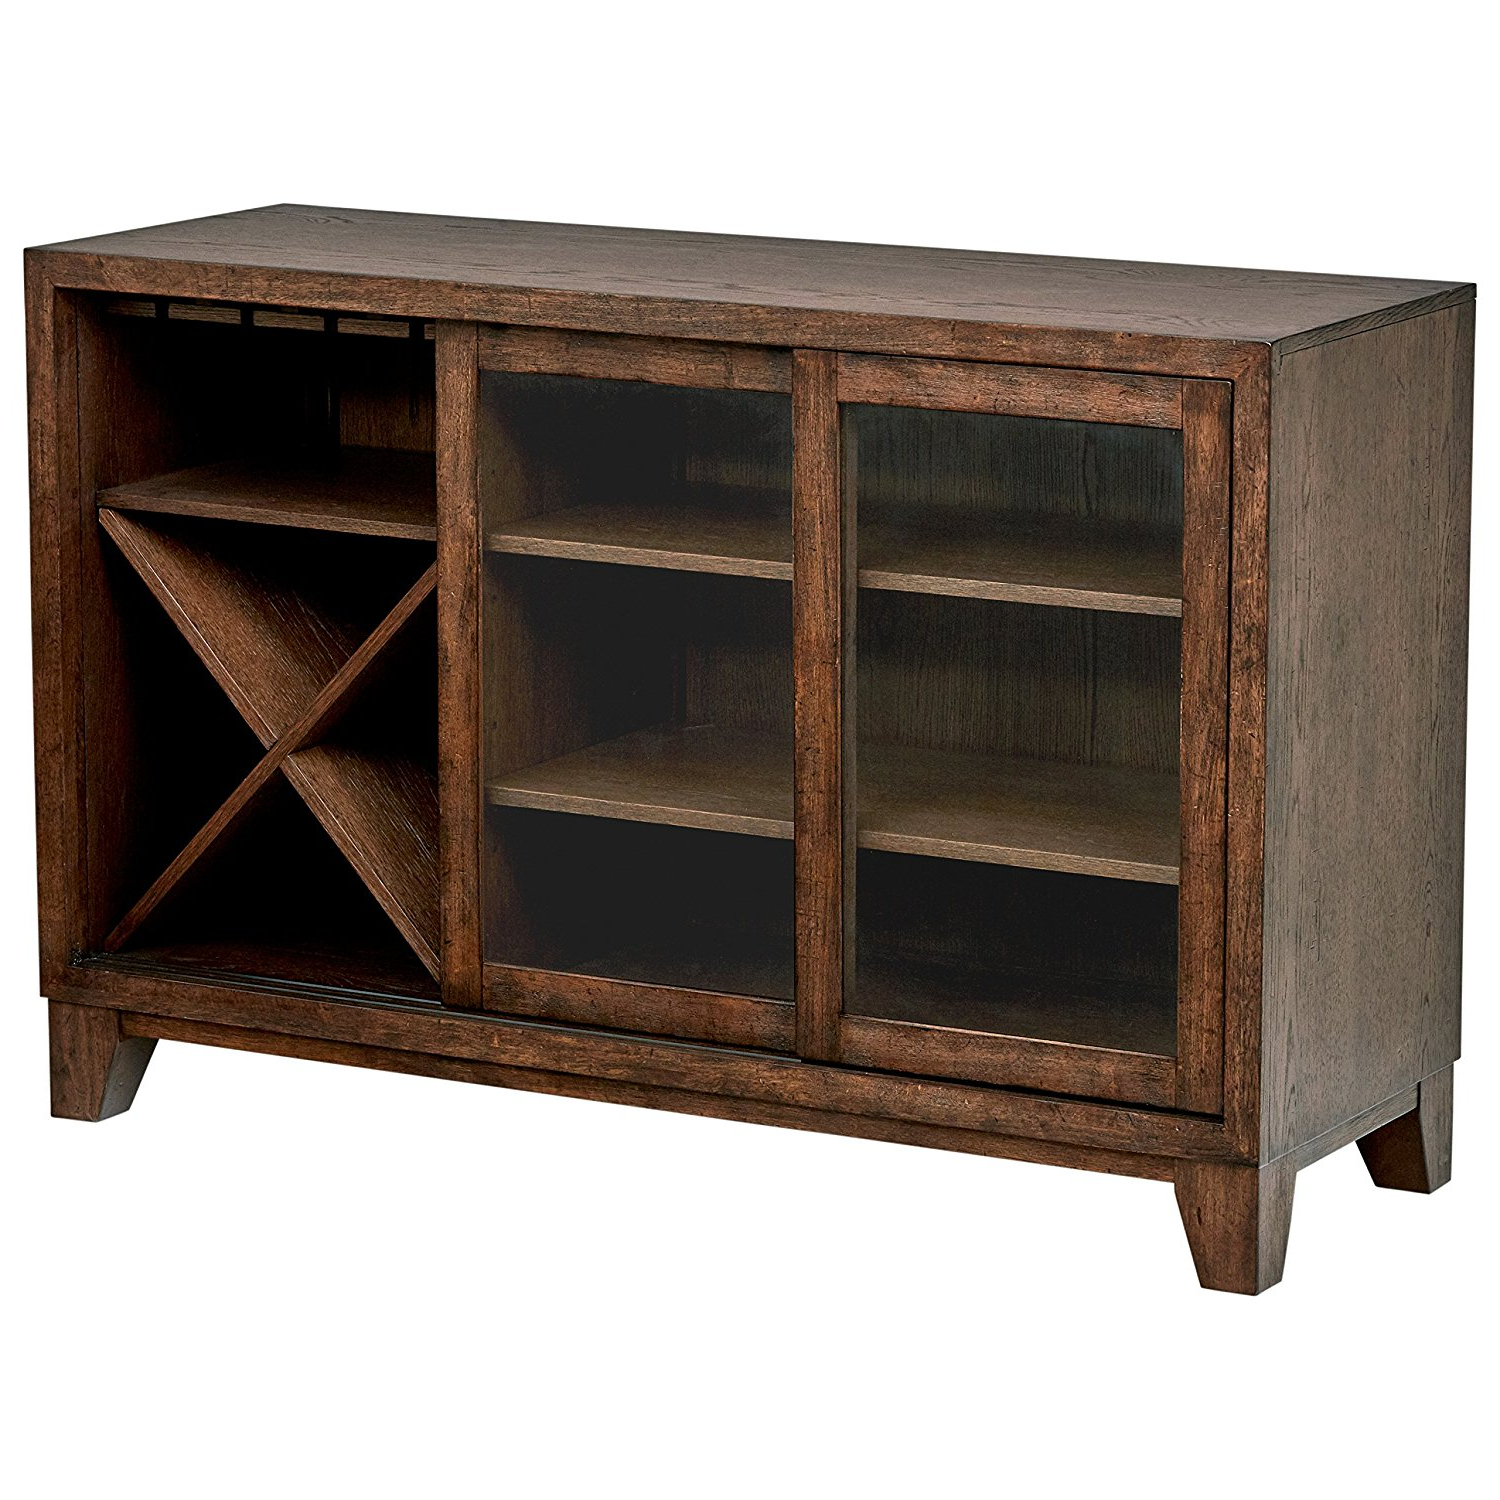 Cheap Modern Buffet, Find Modern Buffet Deals On Line At Pertaining To Contemporary Wooden Buffets With Four Open Compartments And Metal Tapered Legs (View 5 of 20)